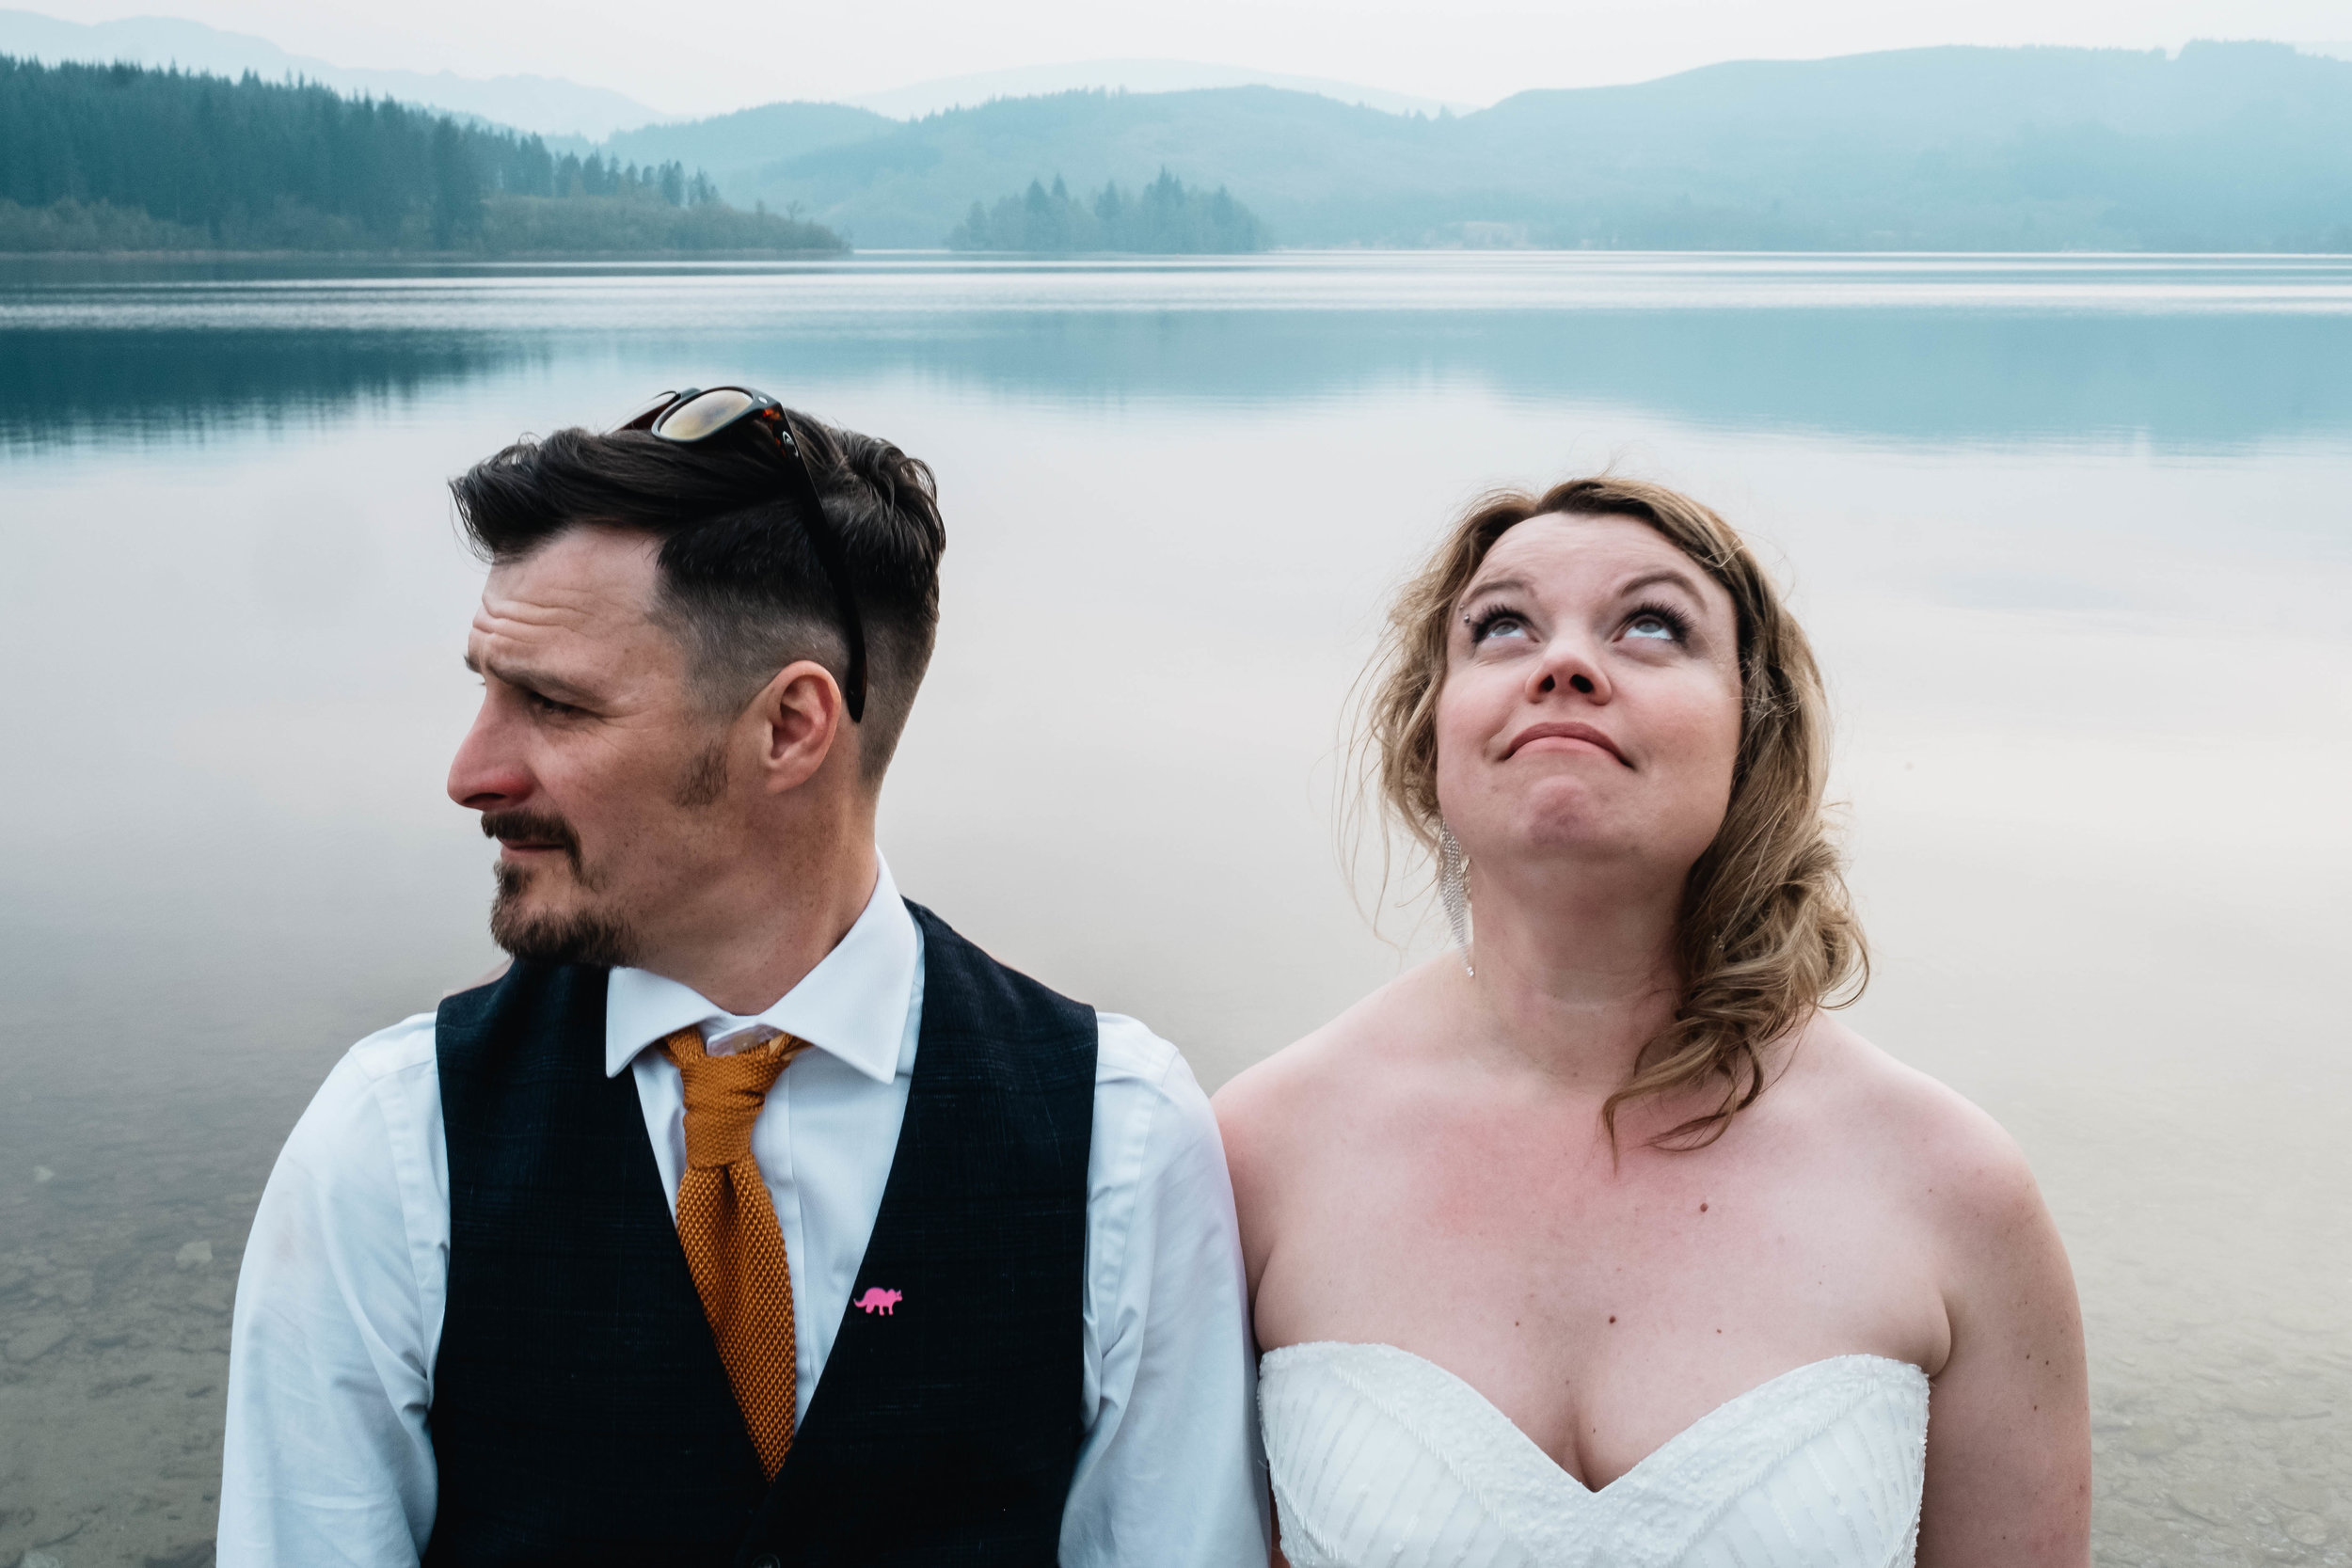 A bride and groom stand next to each other but are lookign in different directions